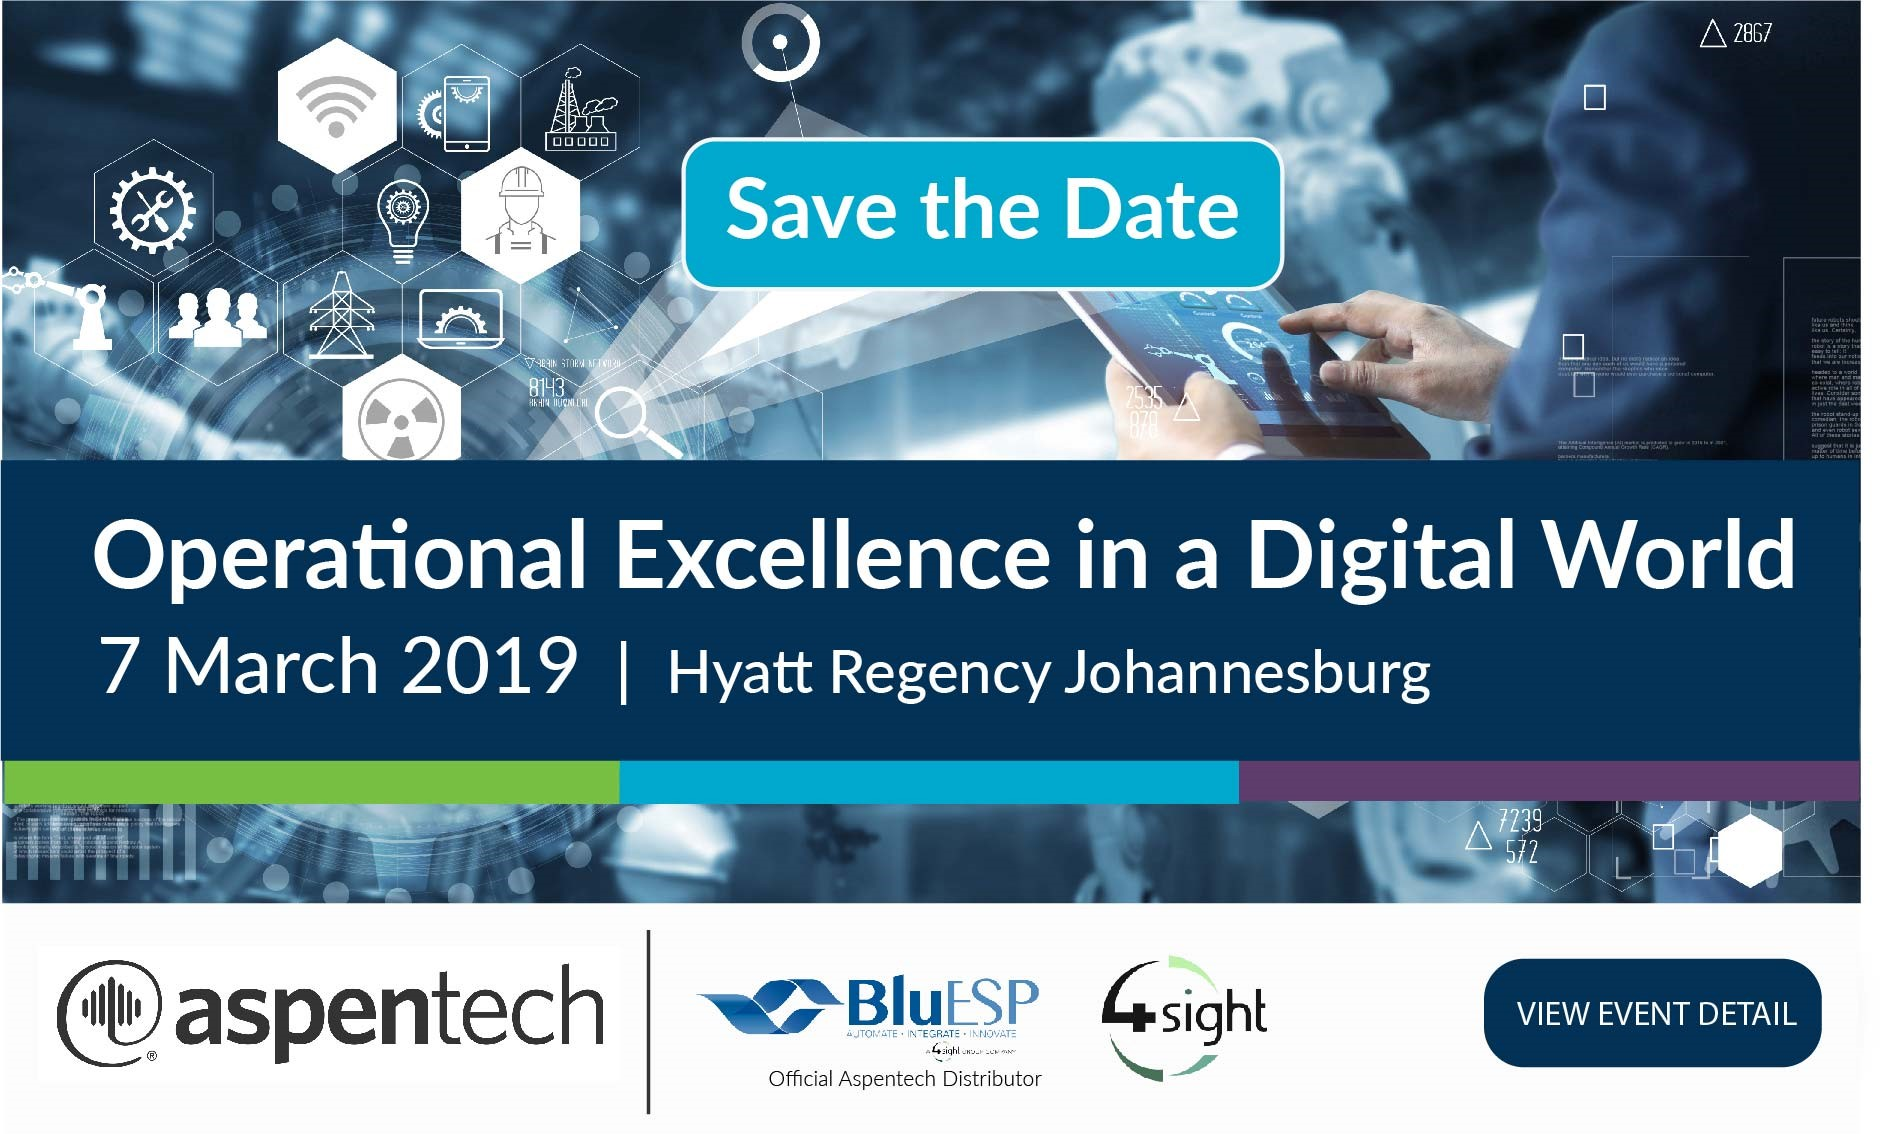 Operational Excellence in a Digital World